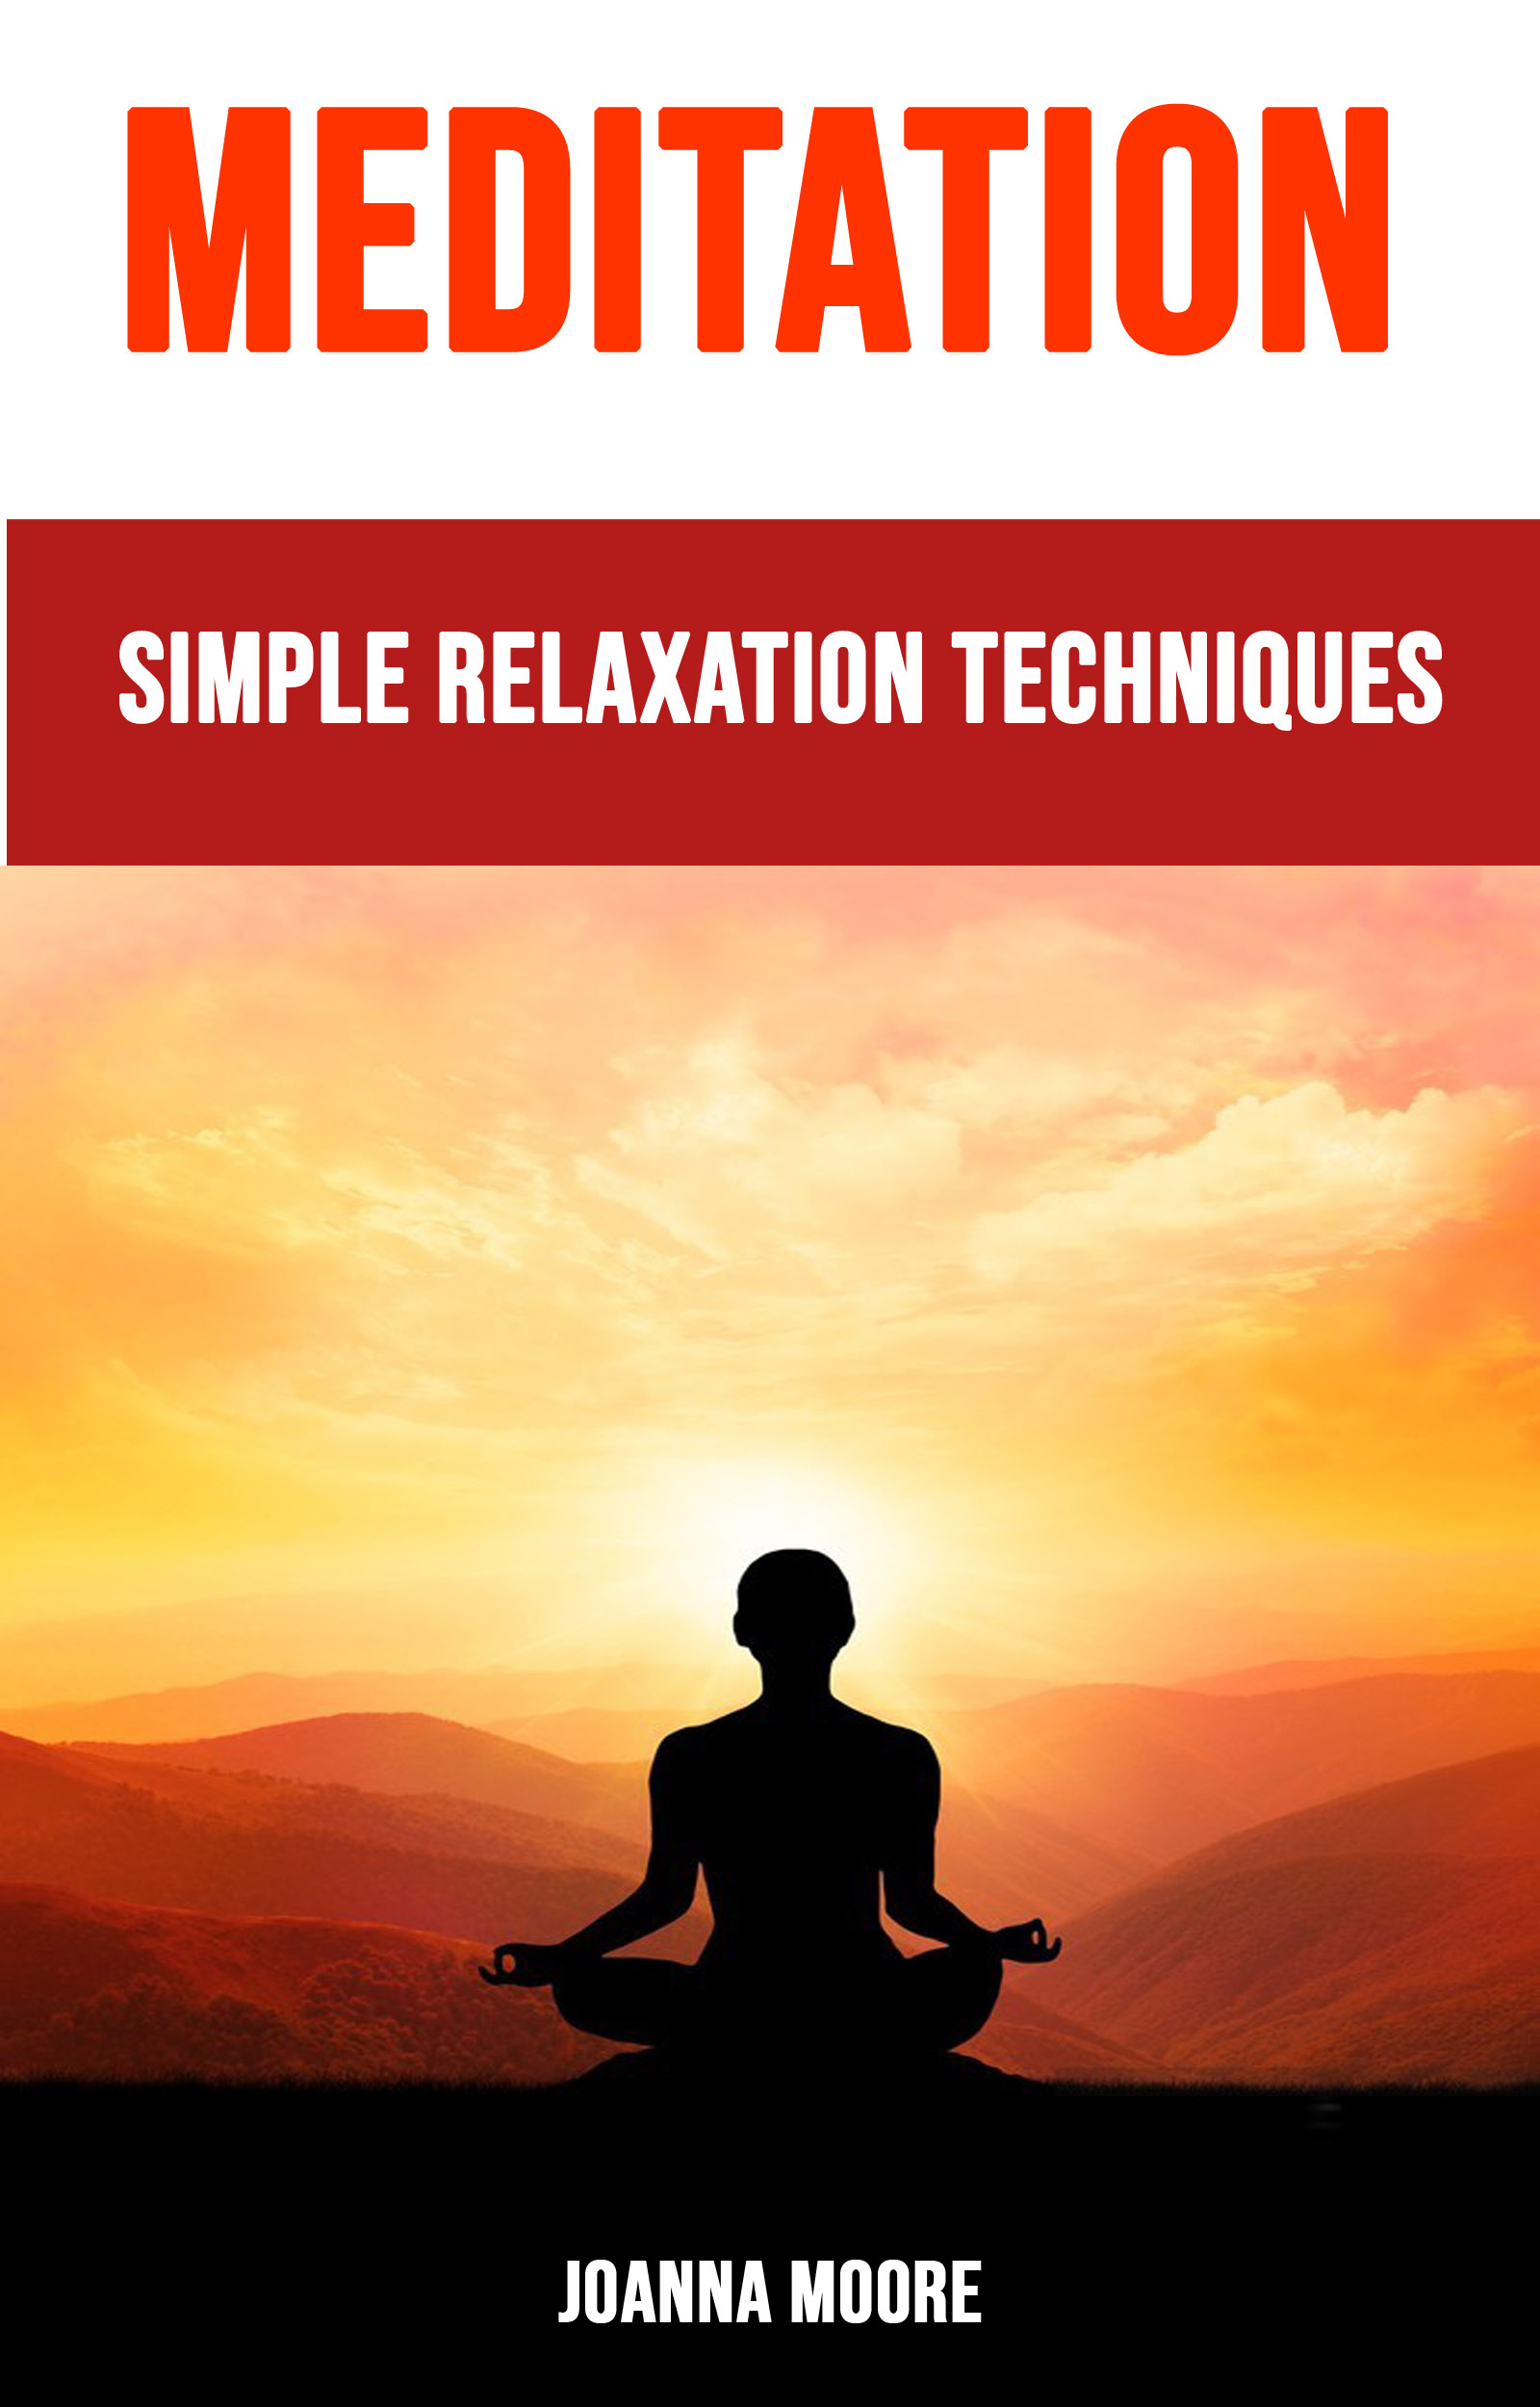 Meditation: simple relaxation techniques